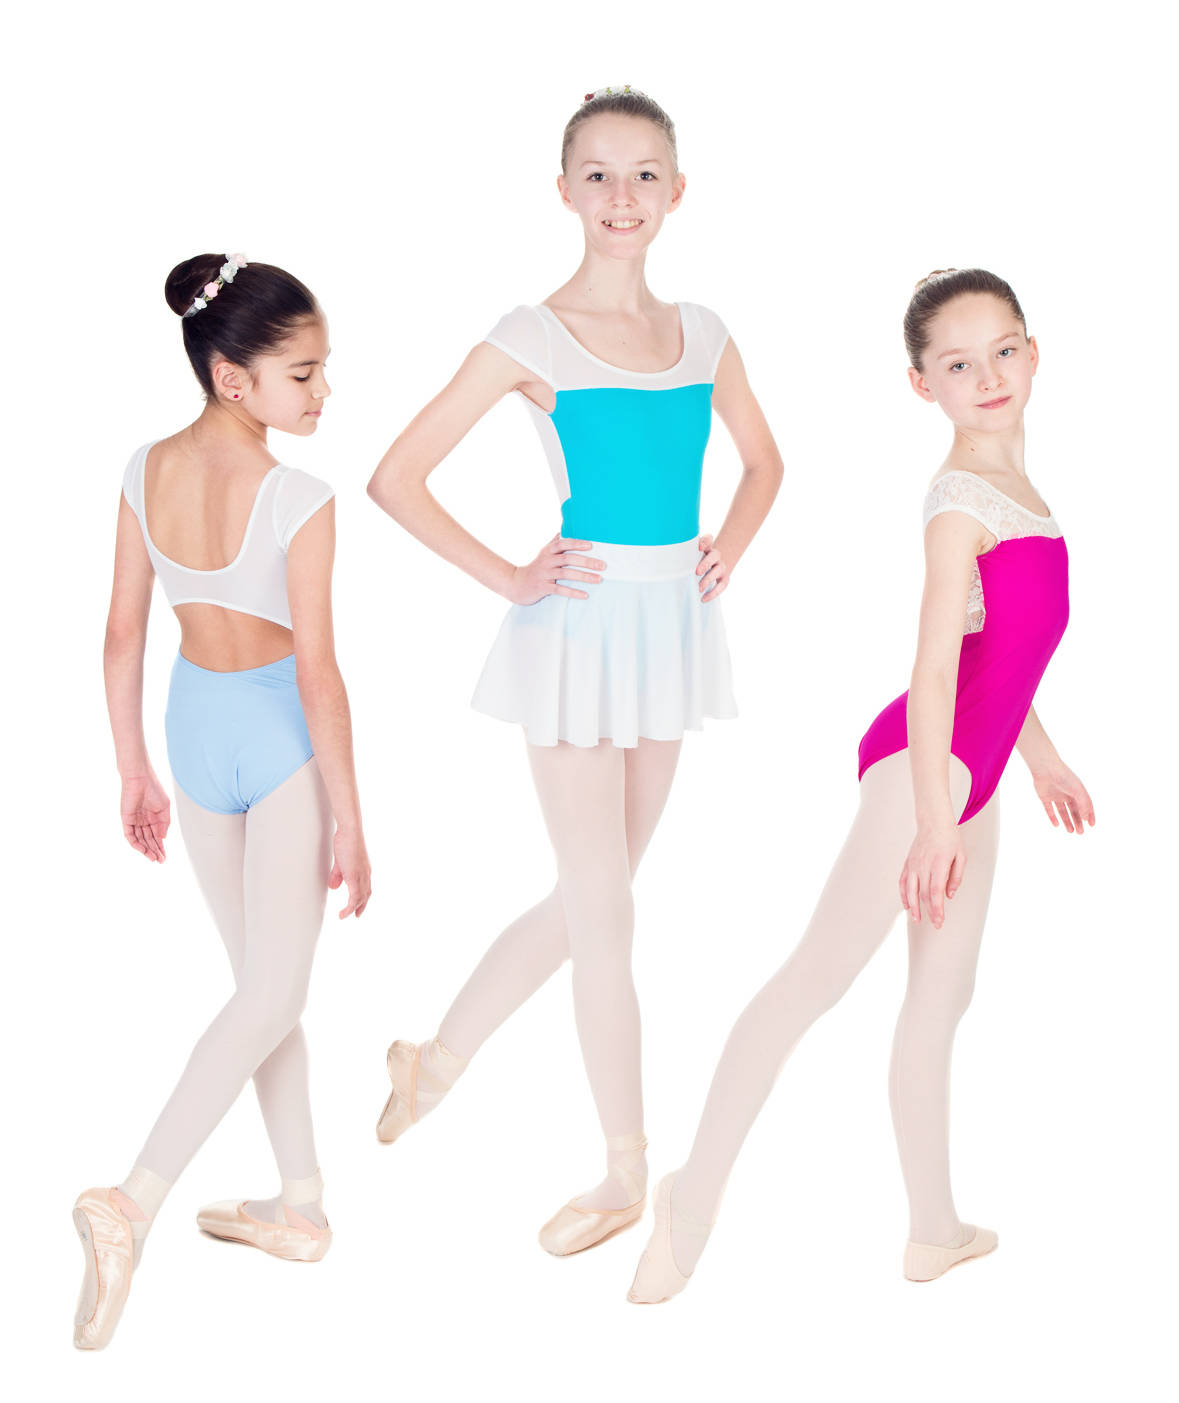 """Princess"" Cap Sleeve Leotard with Open Back in Lace or Mesh - Custom Designed Leotards - Child and Adult Sizes"